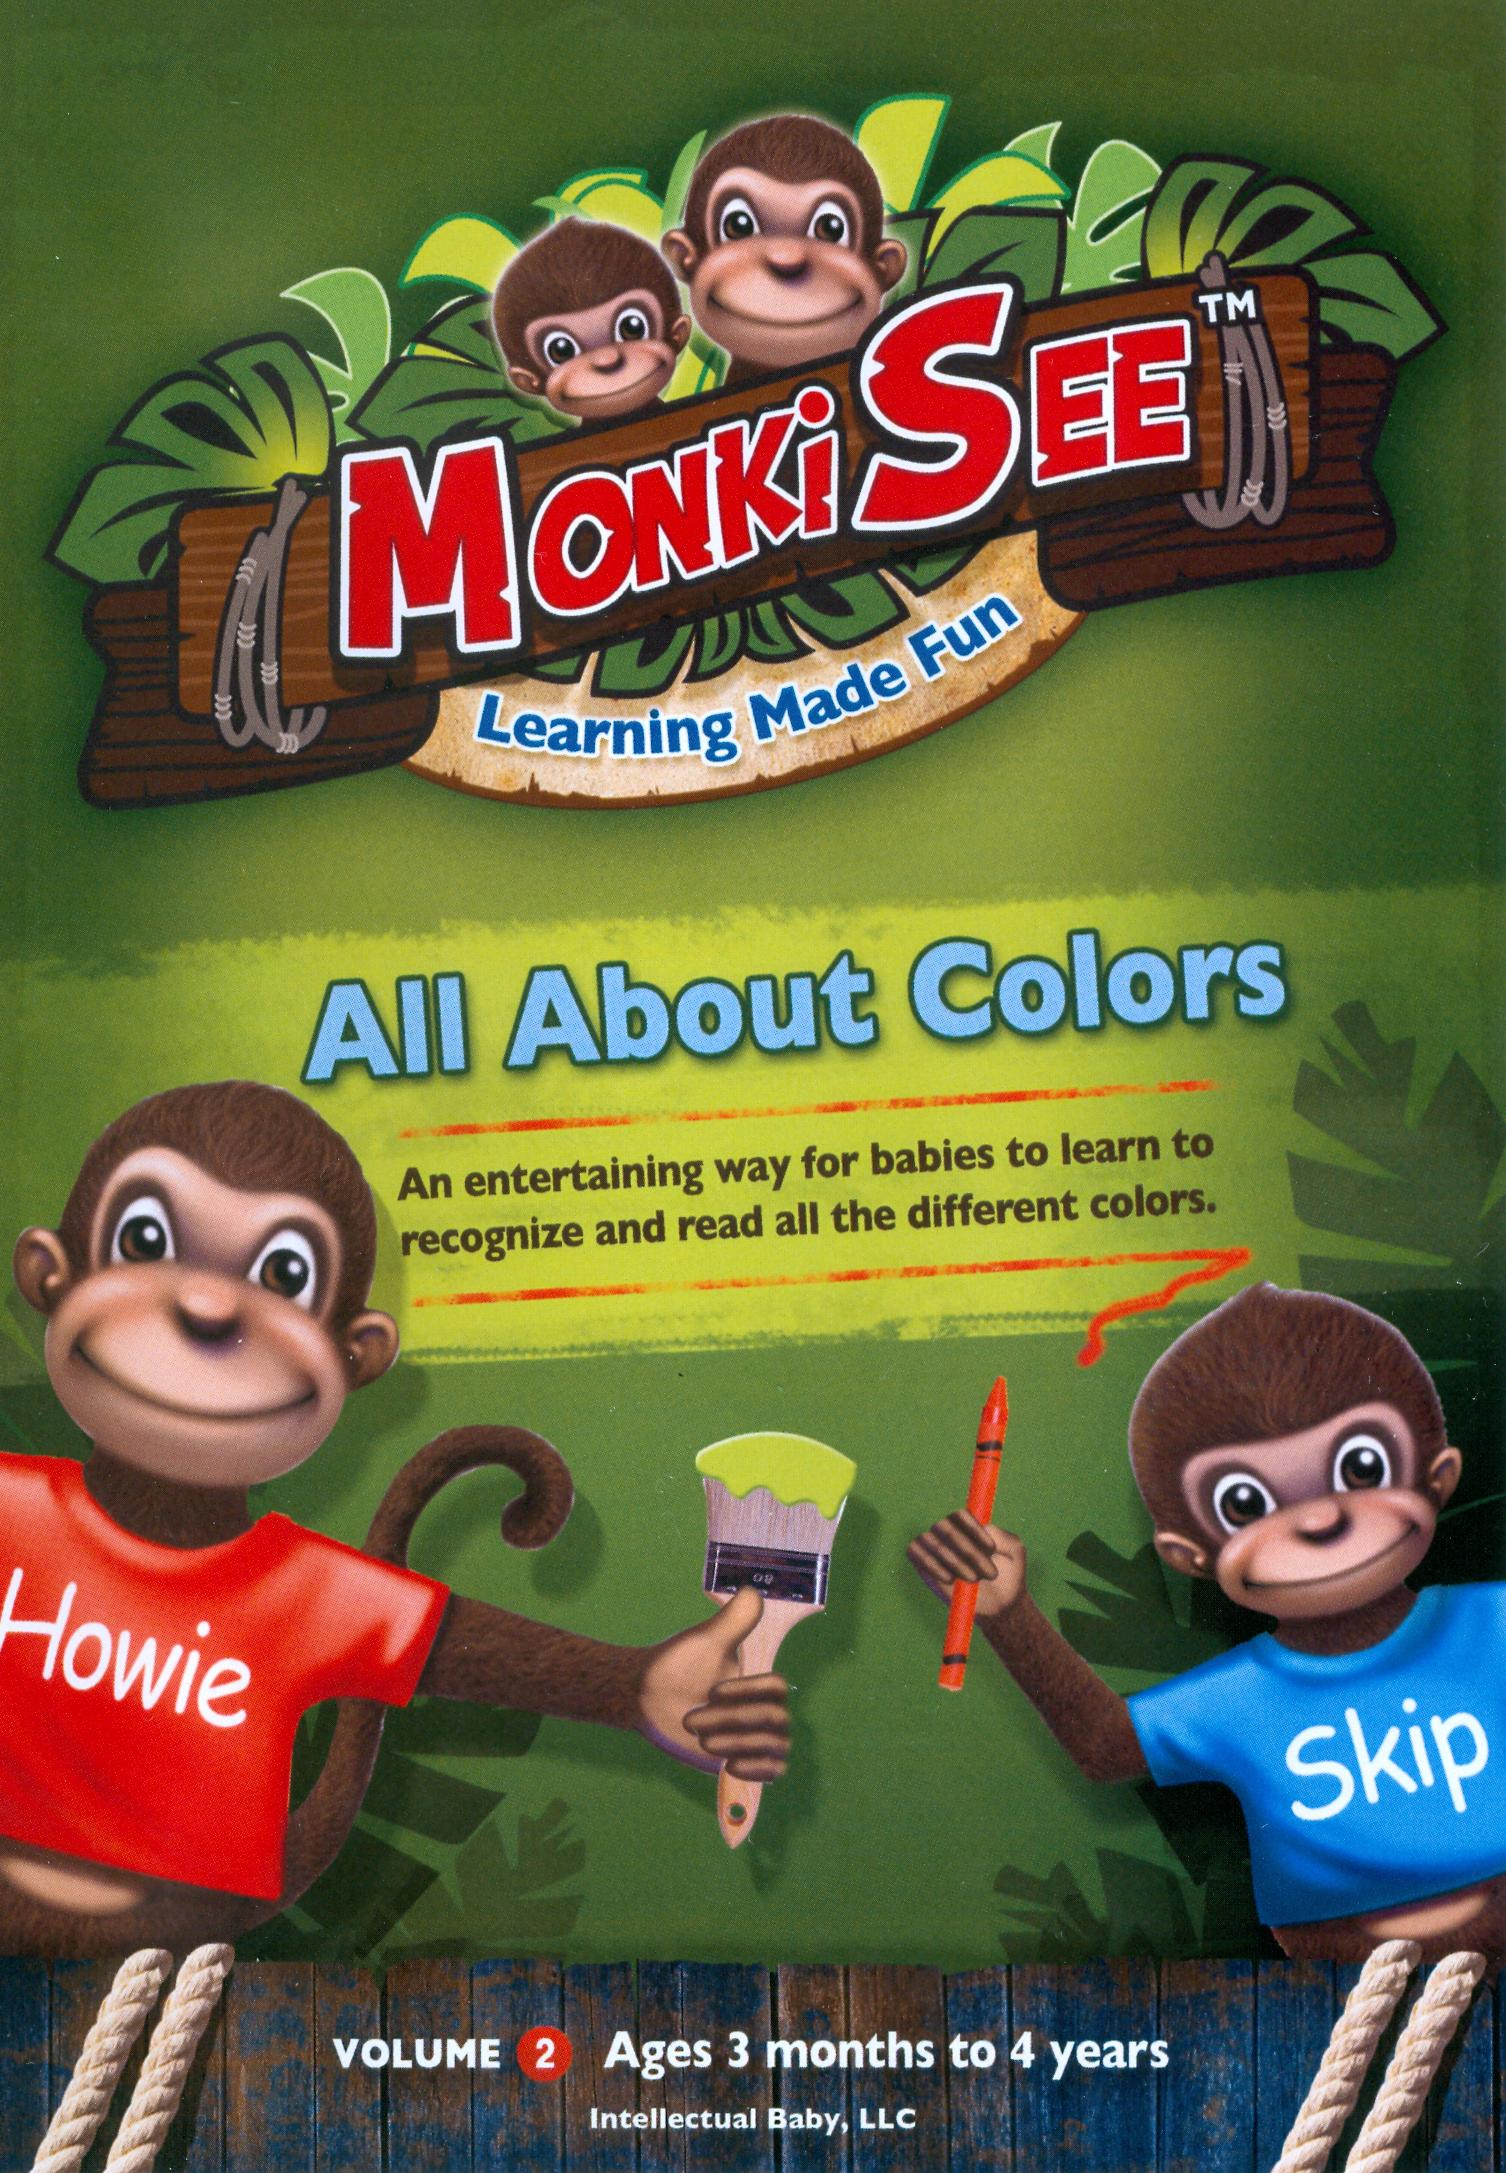 MonkiSee: All About Colors